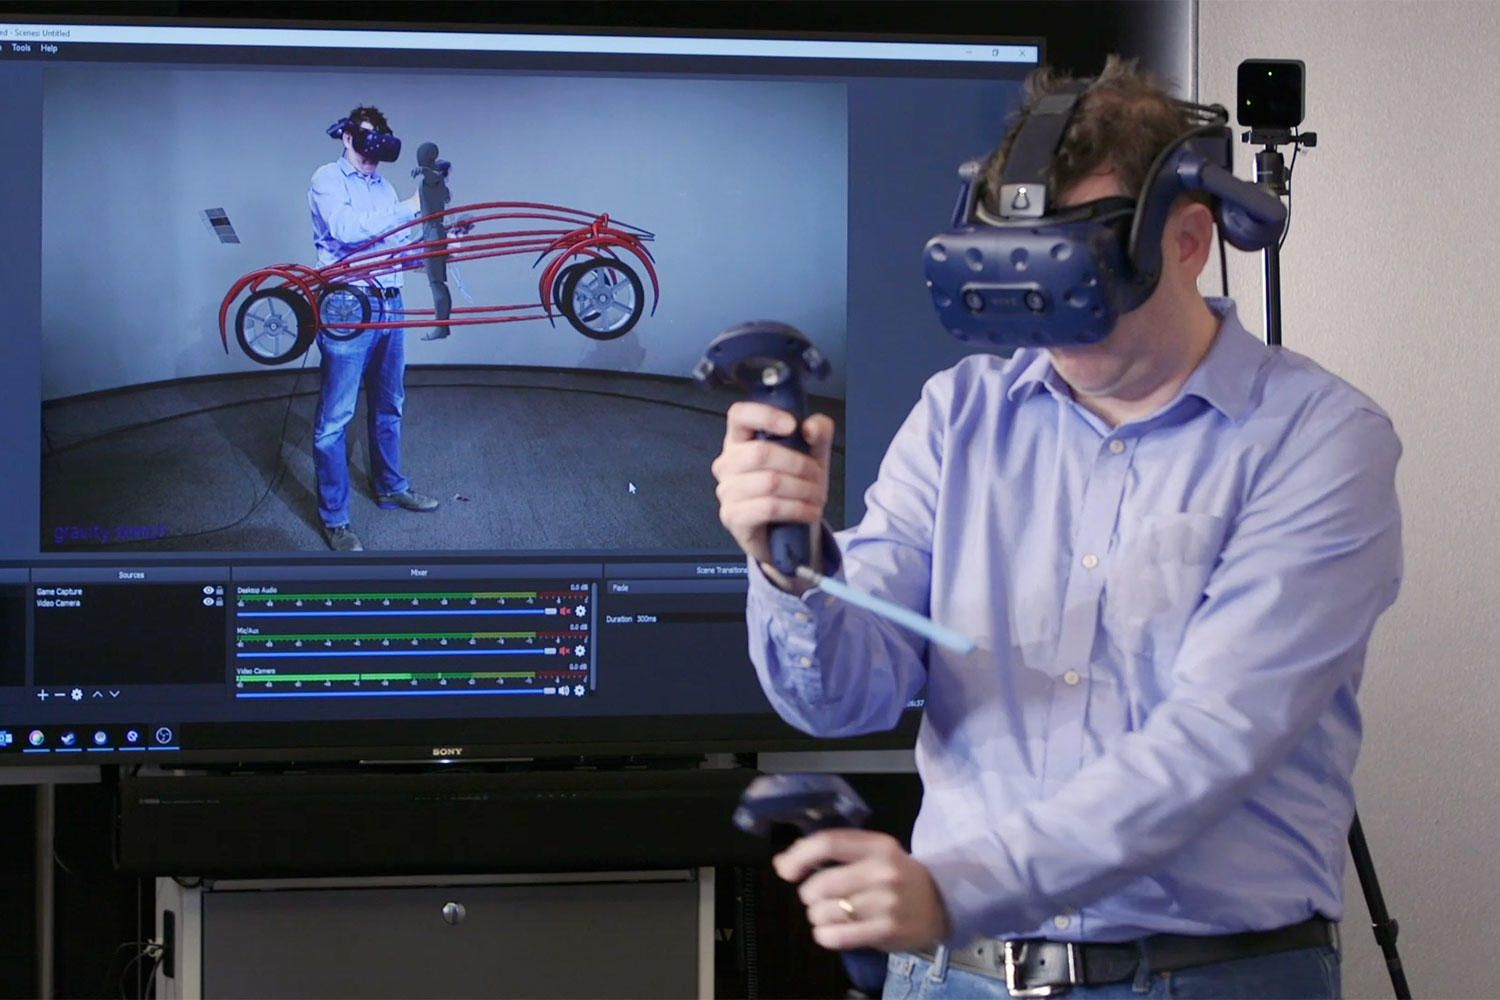 Ford designers around the world can now collaborate in virtual reality design